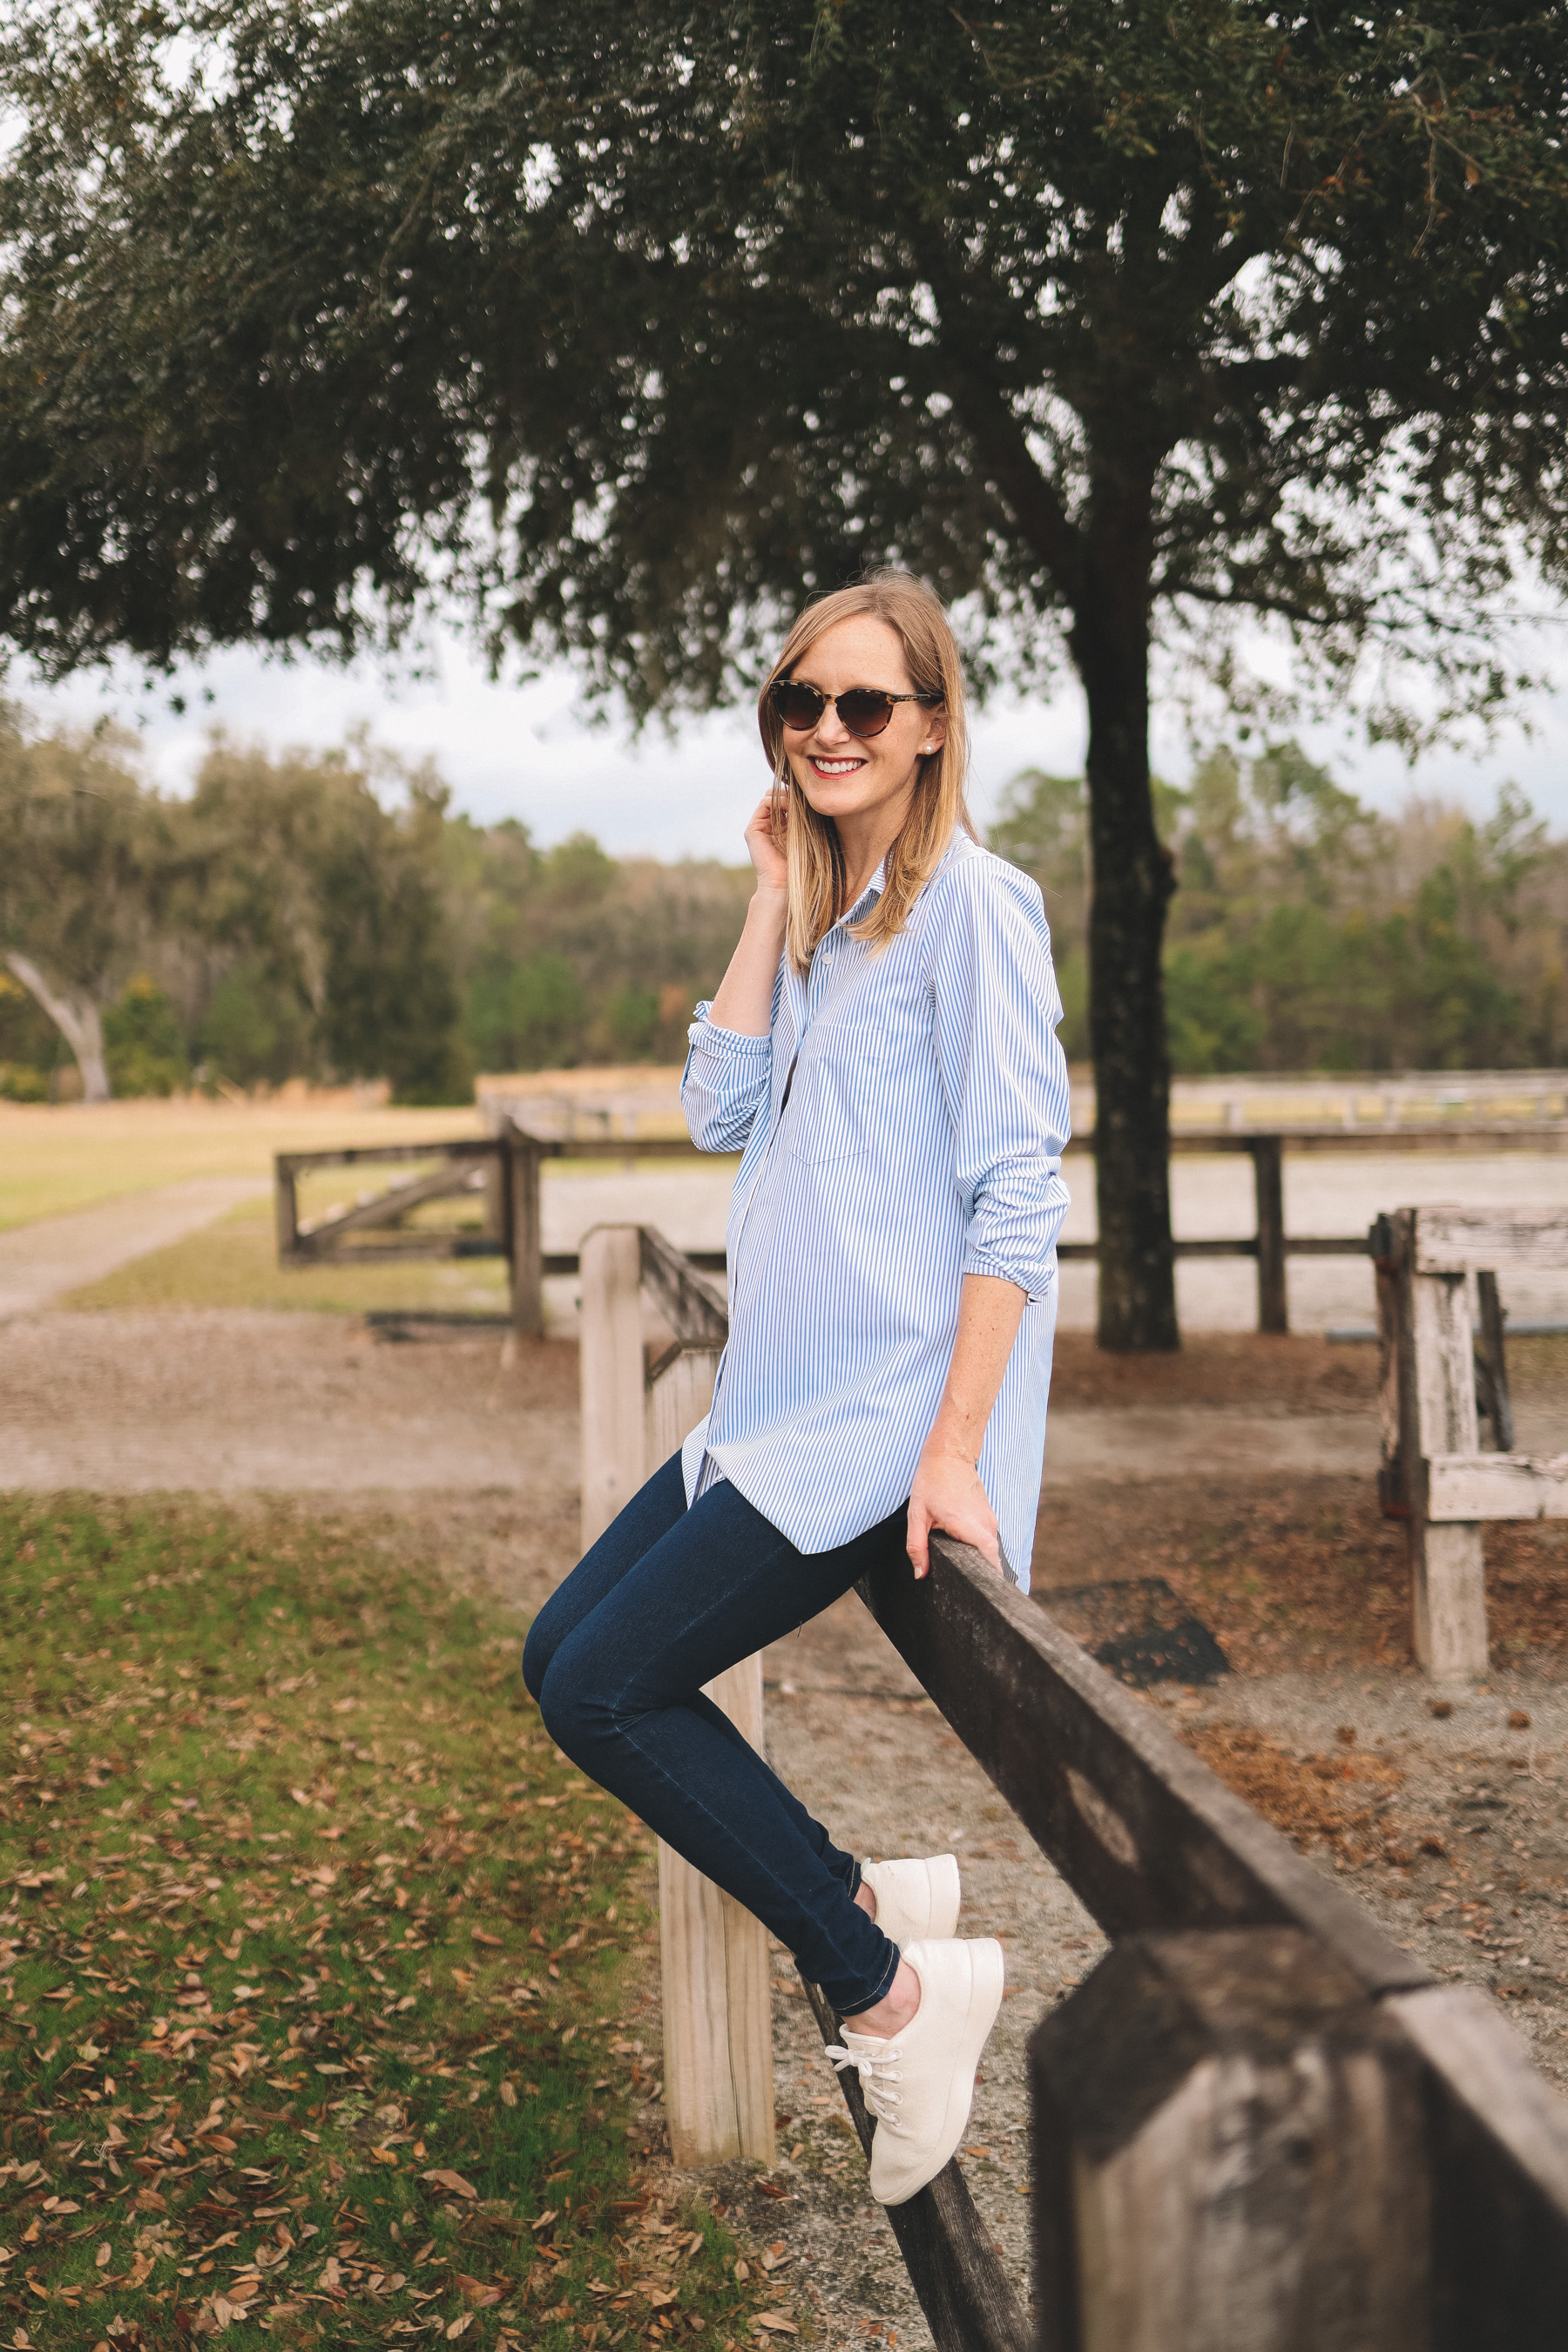 Kelly's outfit: No-Wrinkle LYSSÉ Schiffer Shirt (On sale here for only $27! Great for travel! Full review here) / Allbirds Machine-Washable Sneakers / Old Navy Rockstar Jeans (Maternity version here. SWEAR by these!)